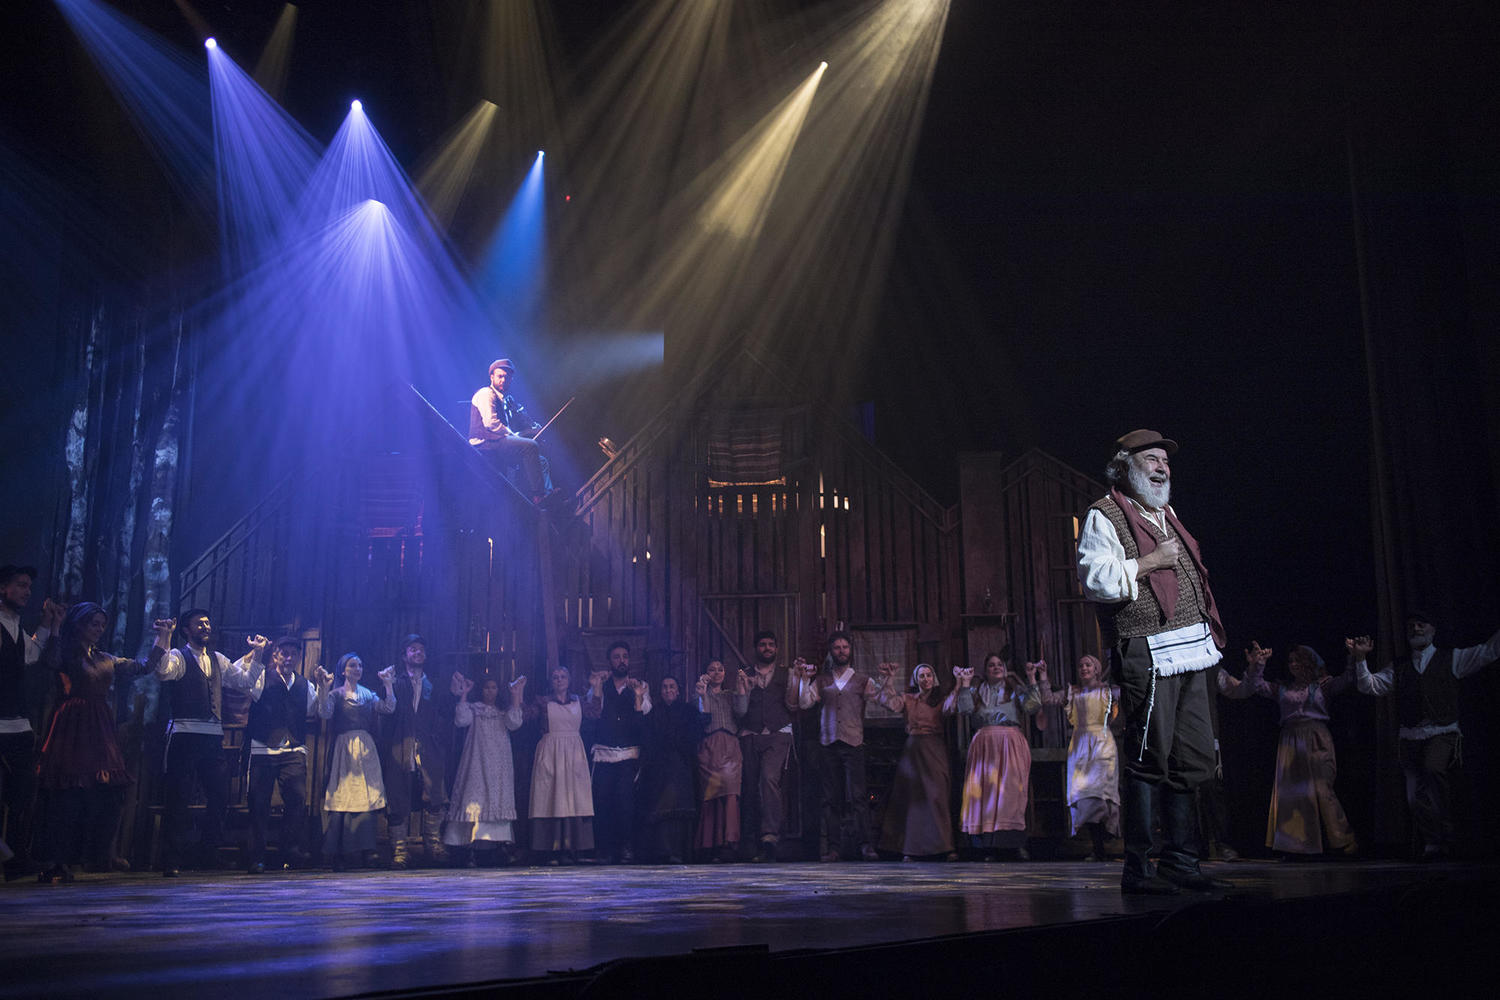 BWW Review: FIDDLER ON THE ROOF at Harbiye Open Air Theatre